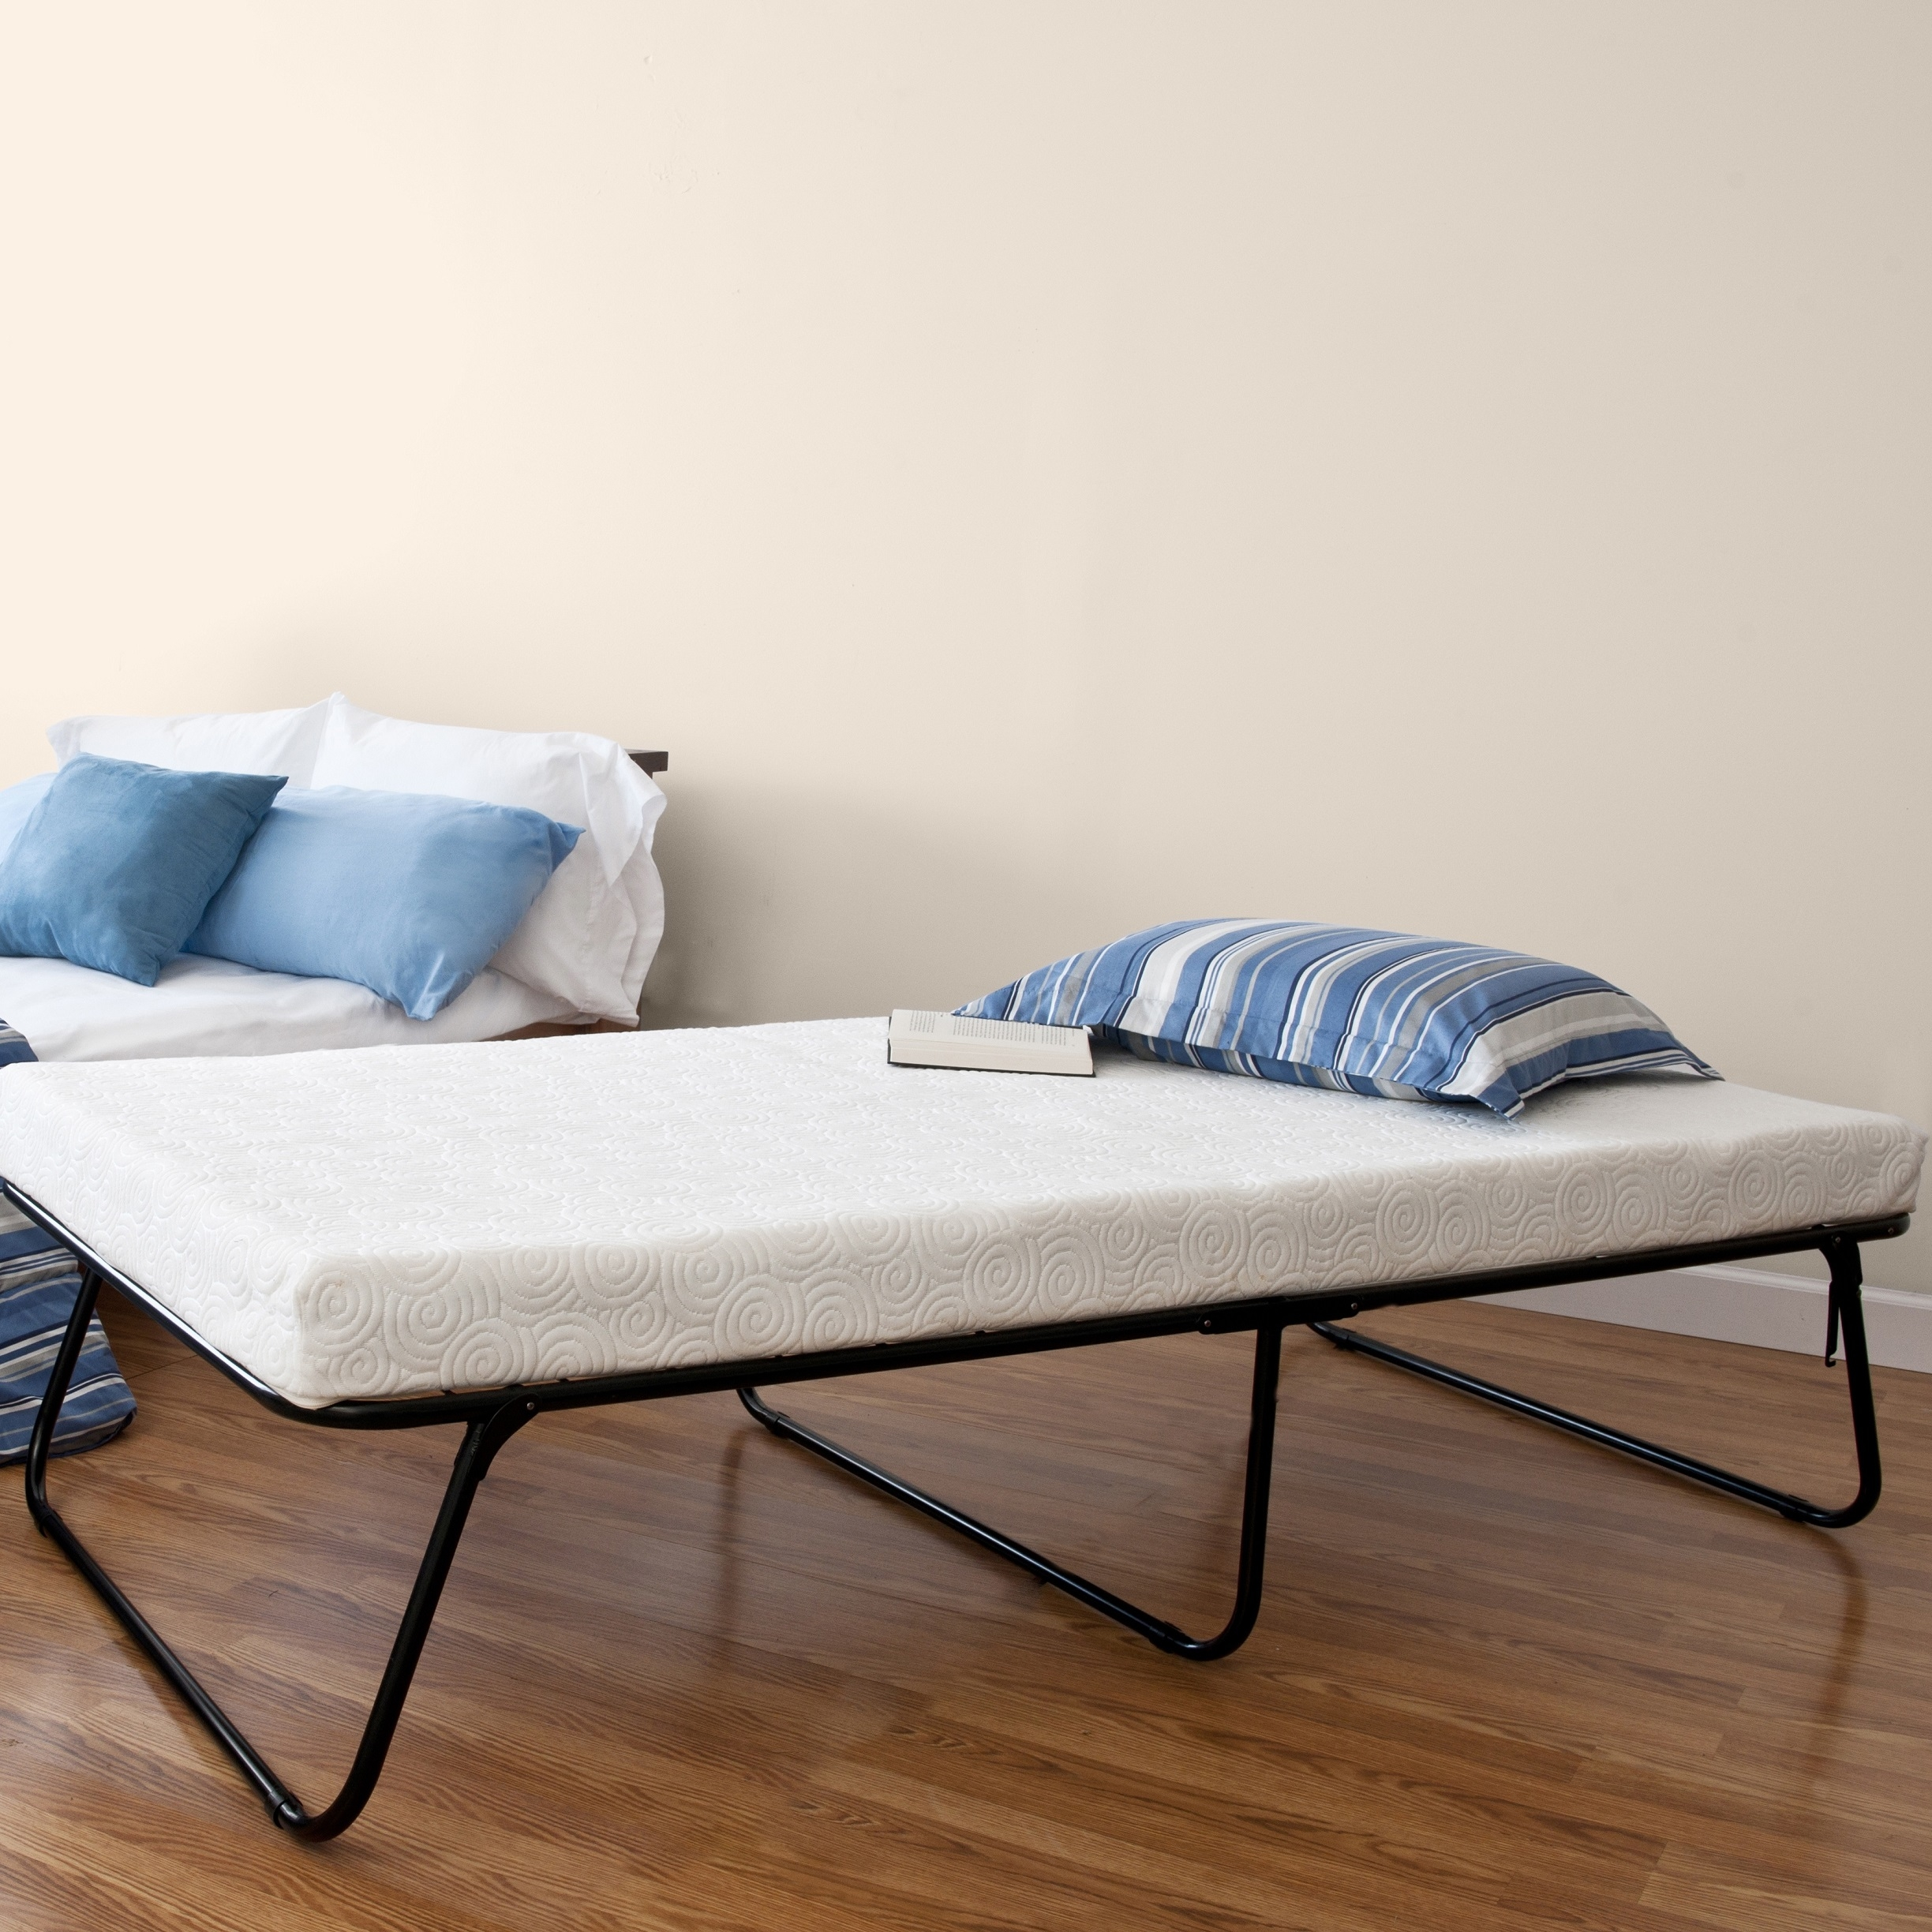 Twin Portable Folding Bed Frame